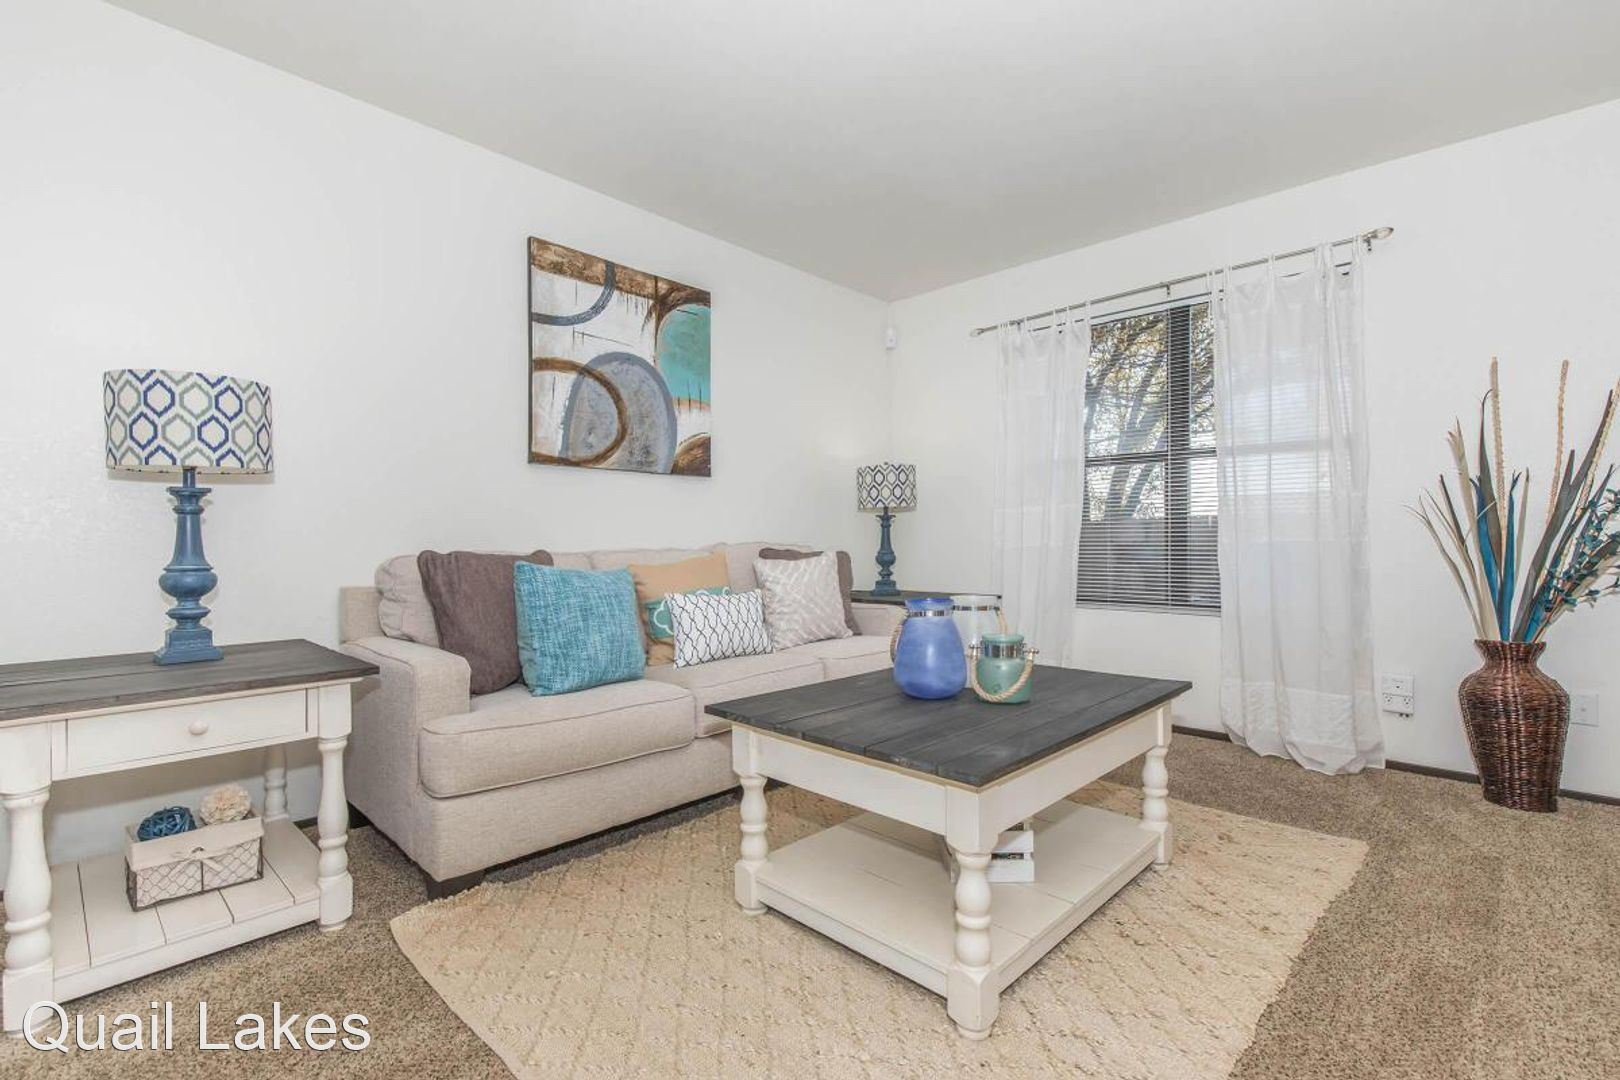 Apartment for Rent in Oklahoma City